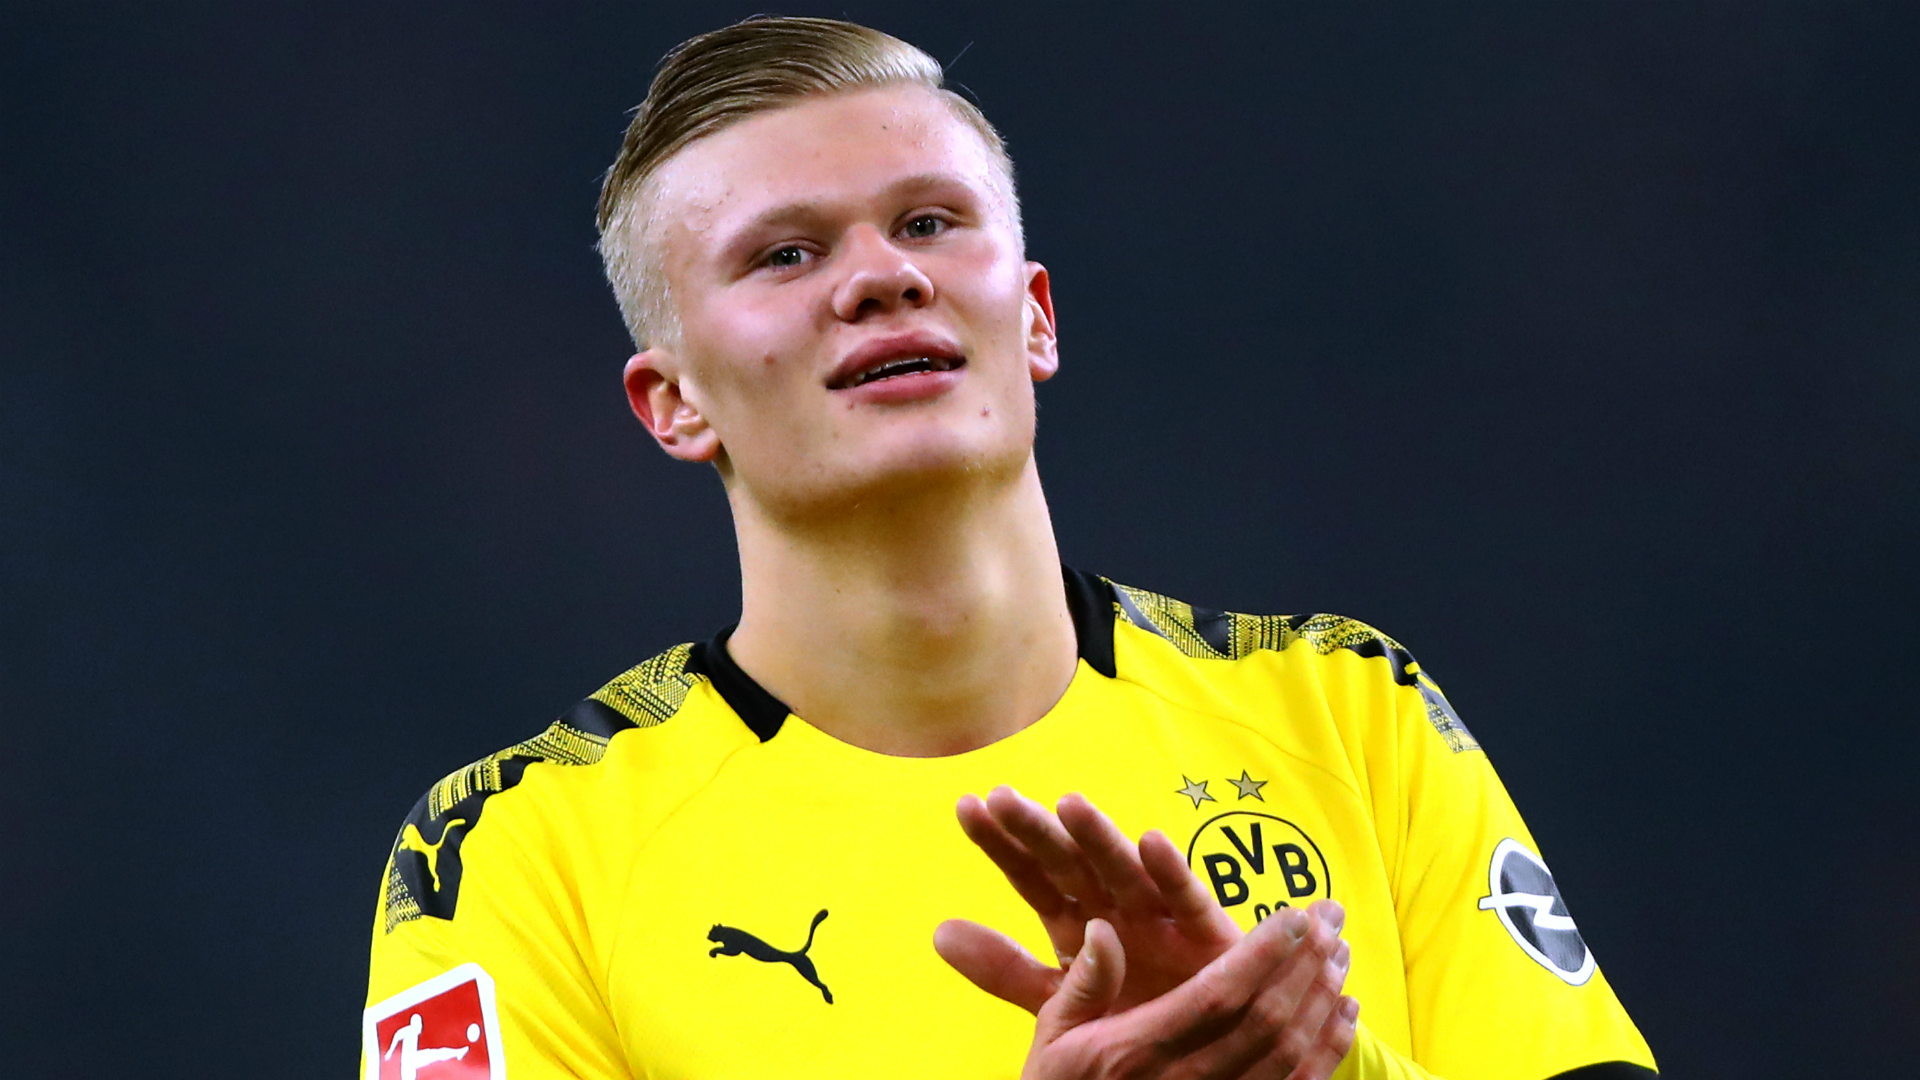 Dortmund boss Favre staying cautious with hotshot Haaland